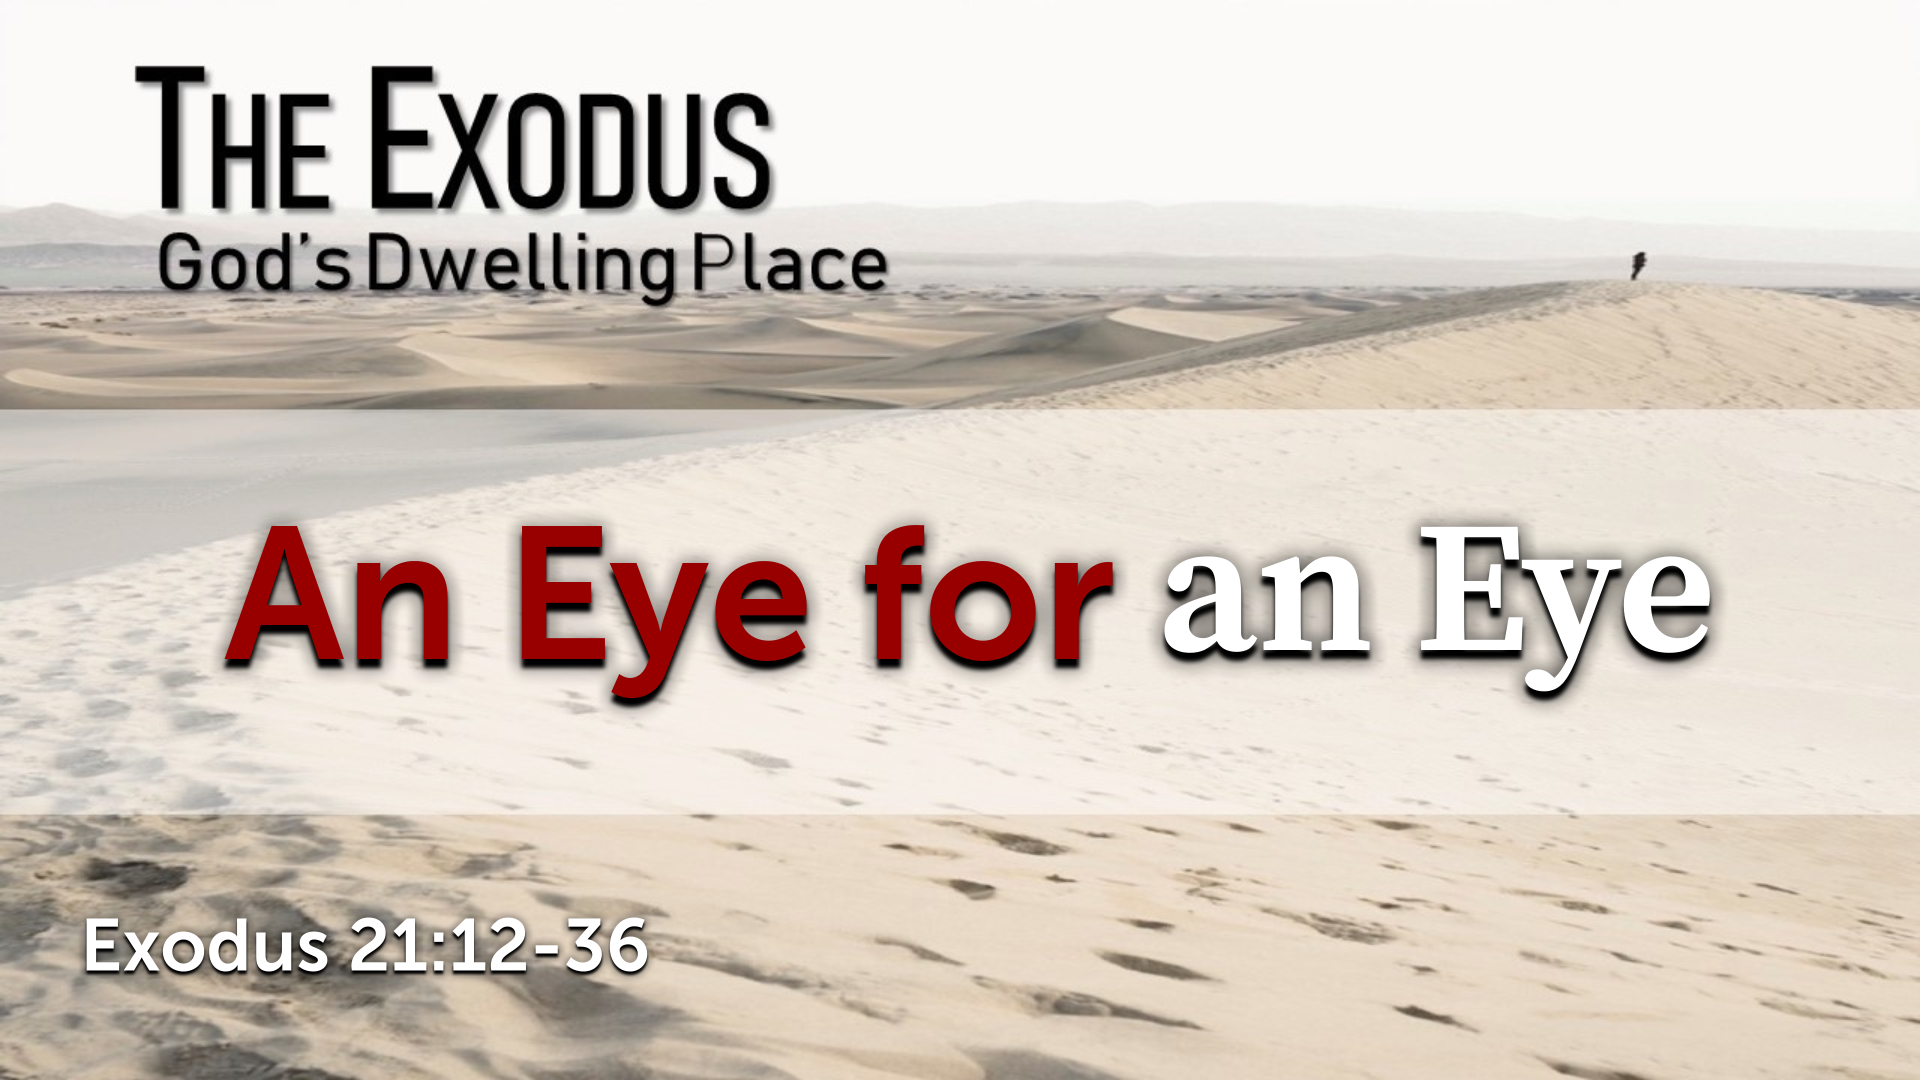 Image for the sermon An Eye for an Eye